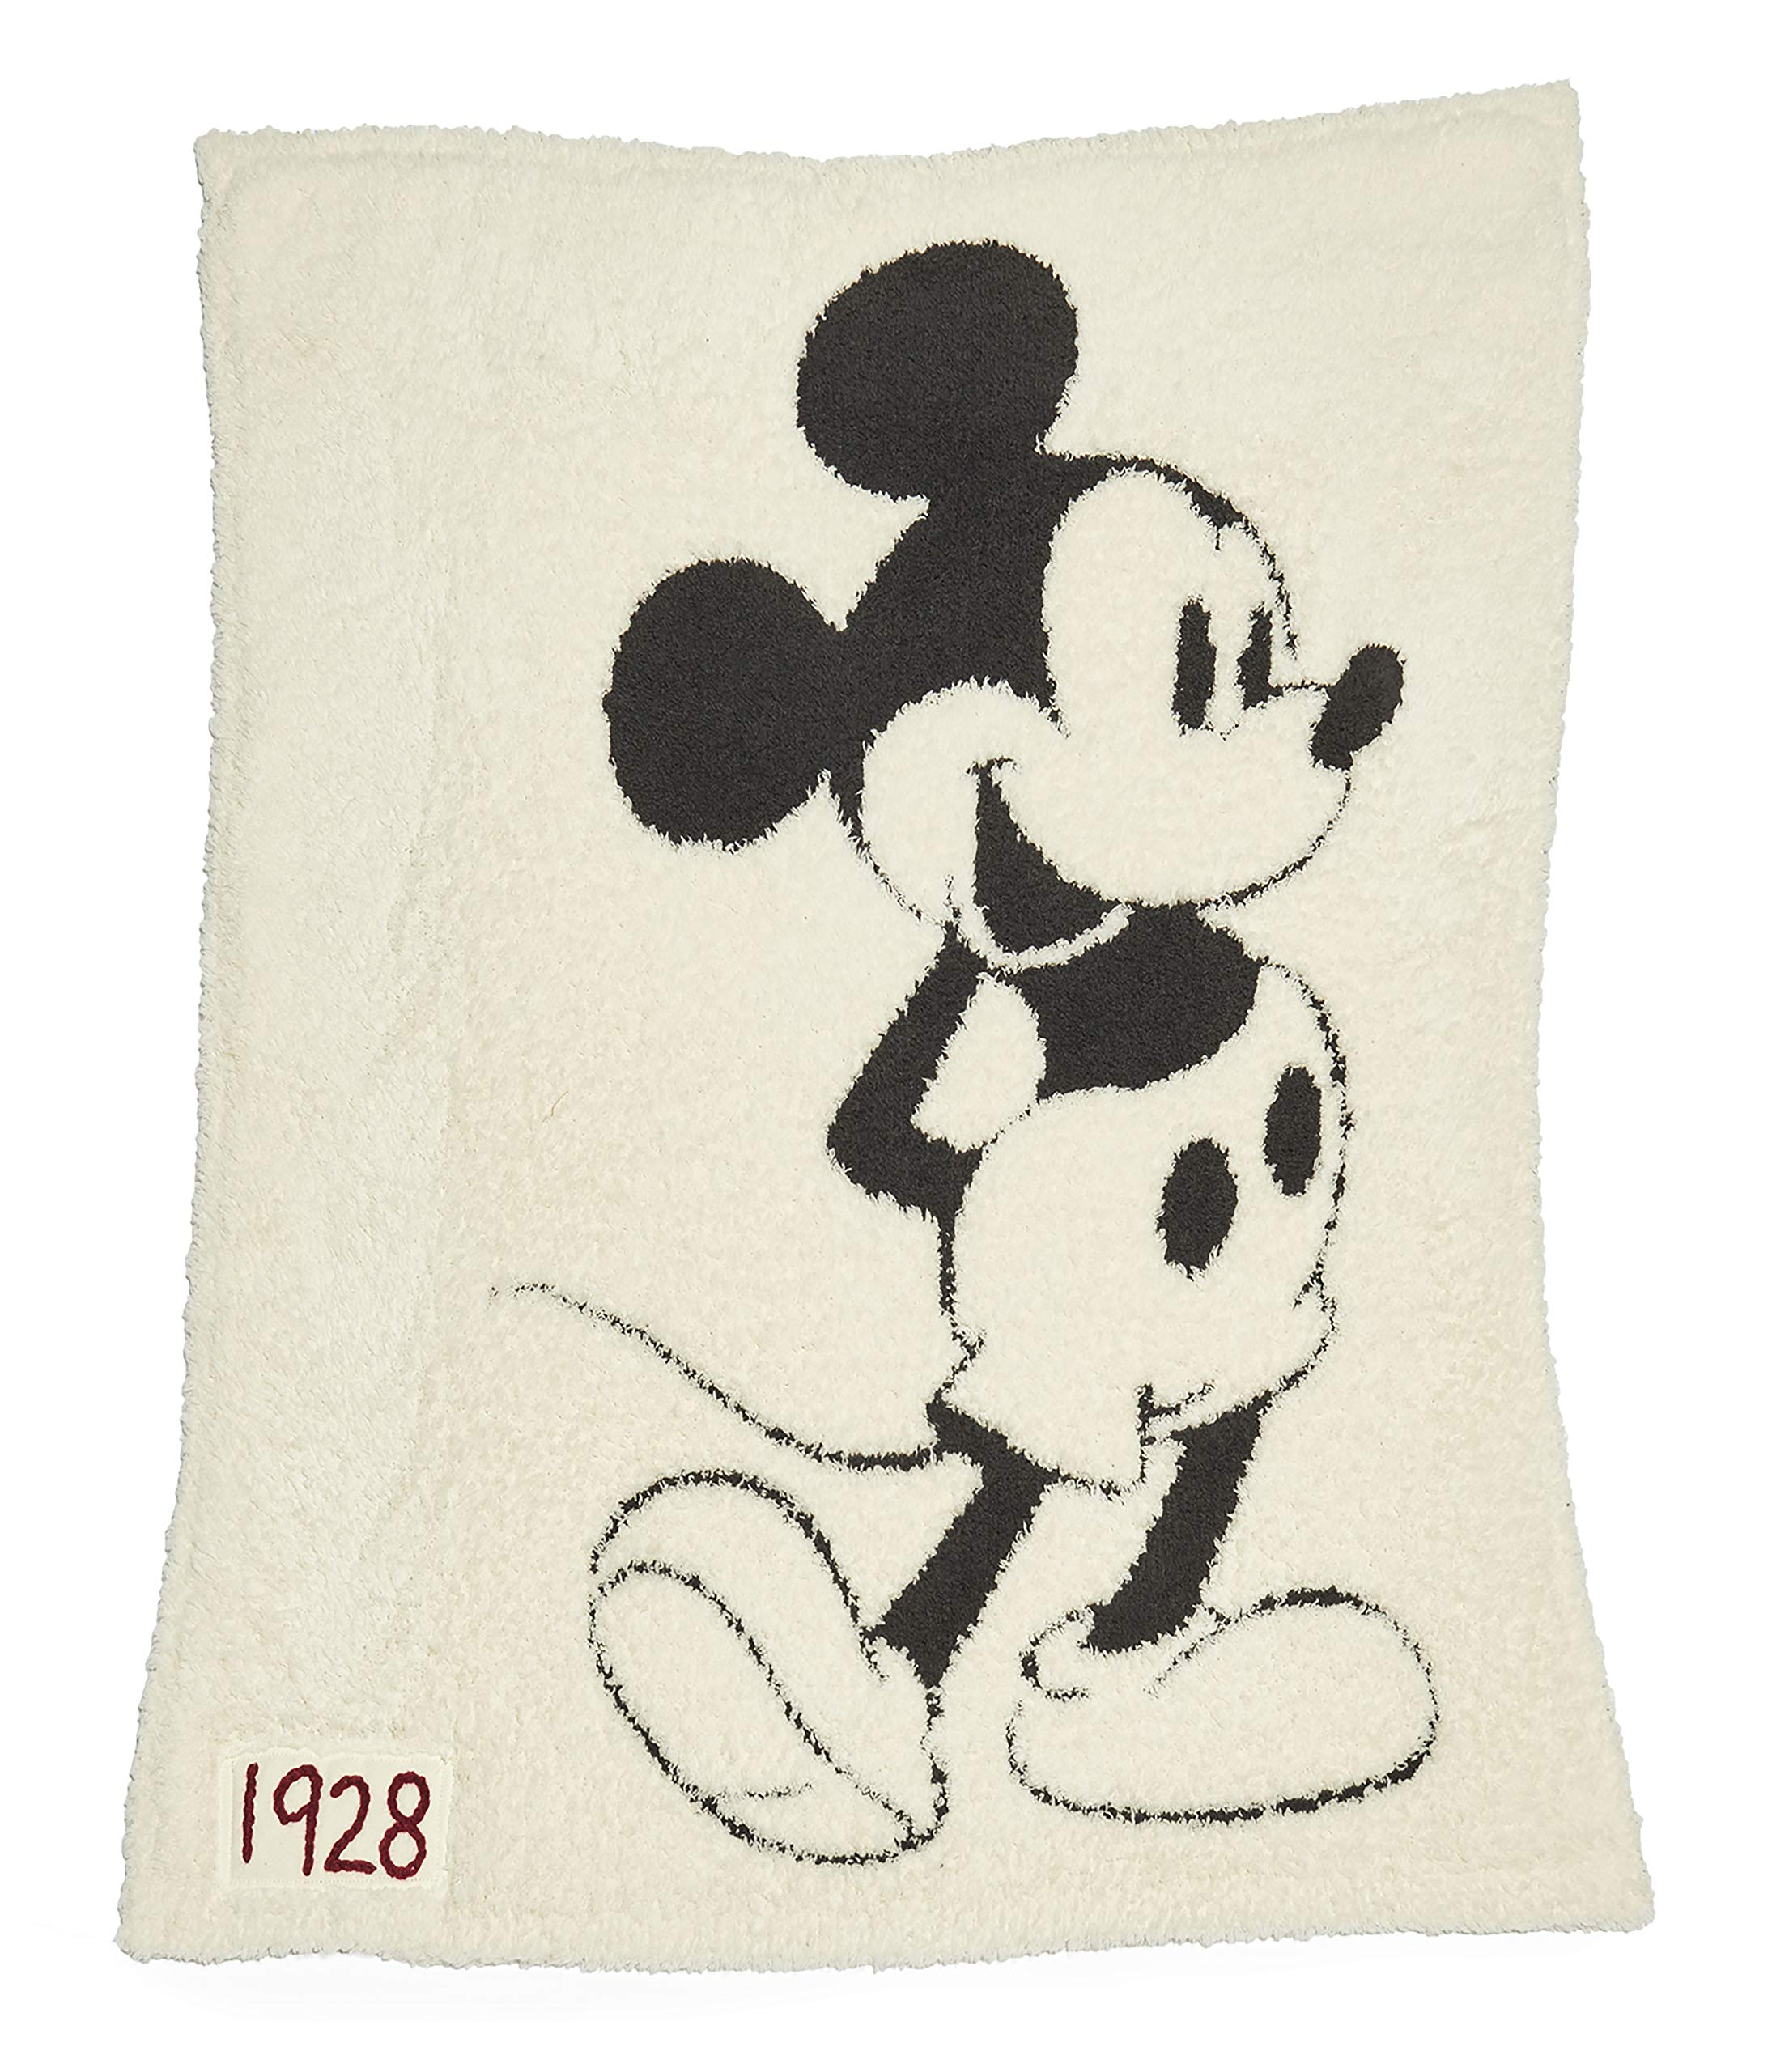 Barefoot Dreams CozyChic Unisex Classic Mickey Mouse Baby Blanket Disney Series- Cream/Carbon by Barefoot Dreams